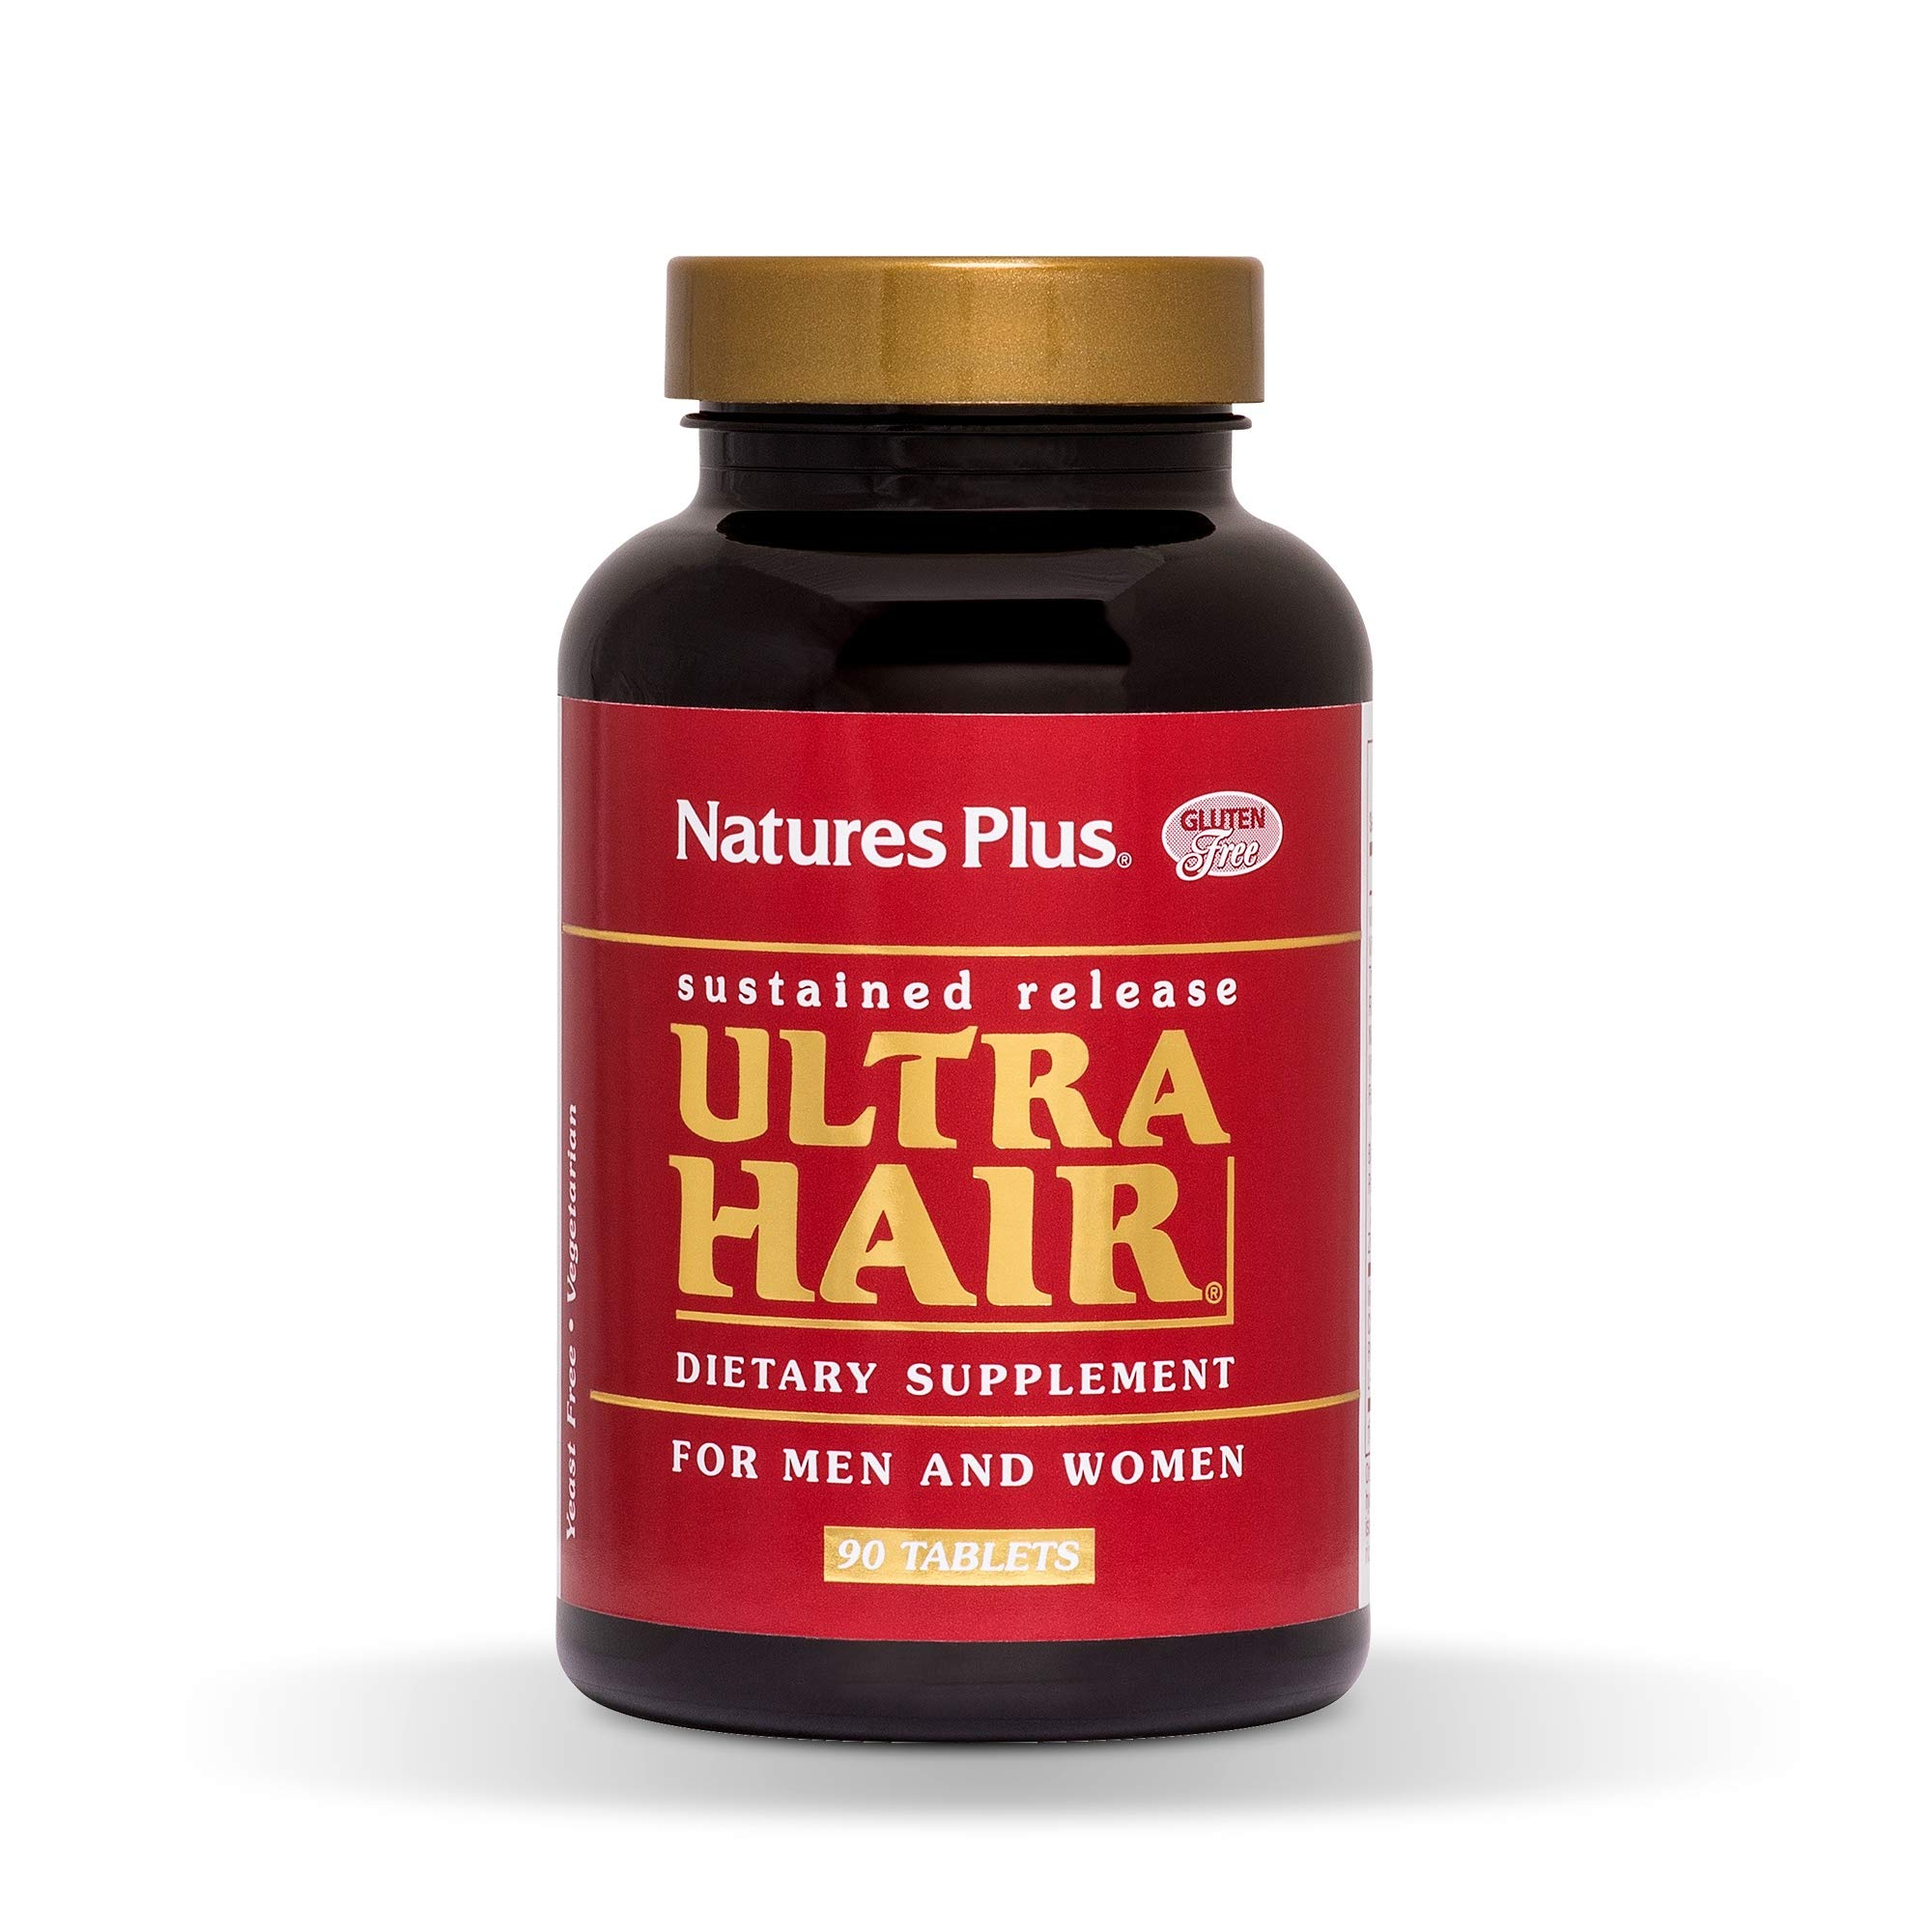 NaturesPlus Ultra Hair, Sustained Release - 90 Vegetarian Tablets - Natural Hair Growth Supplement for Men & Women - Longer, Thicker Hair - Gluten-Free - 45 Servings